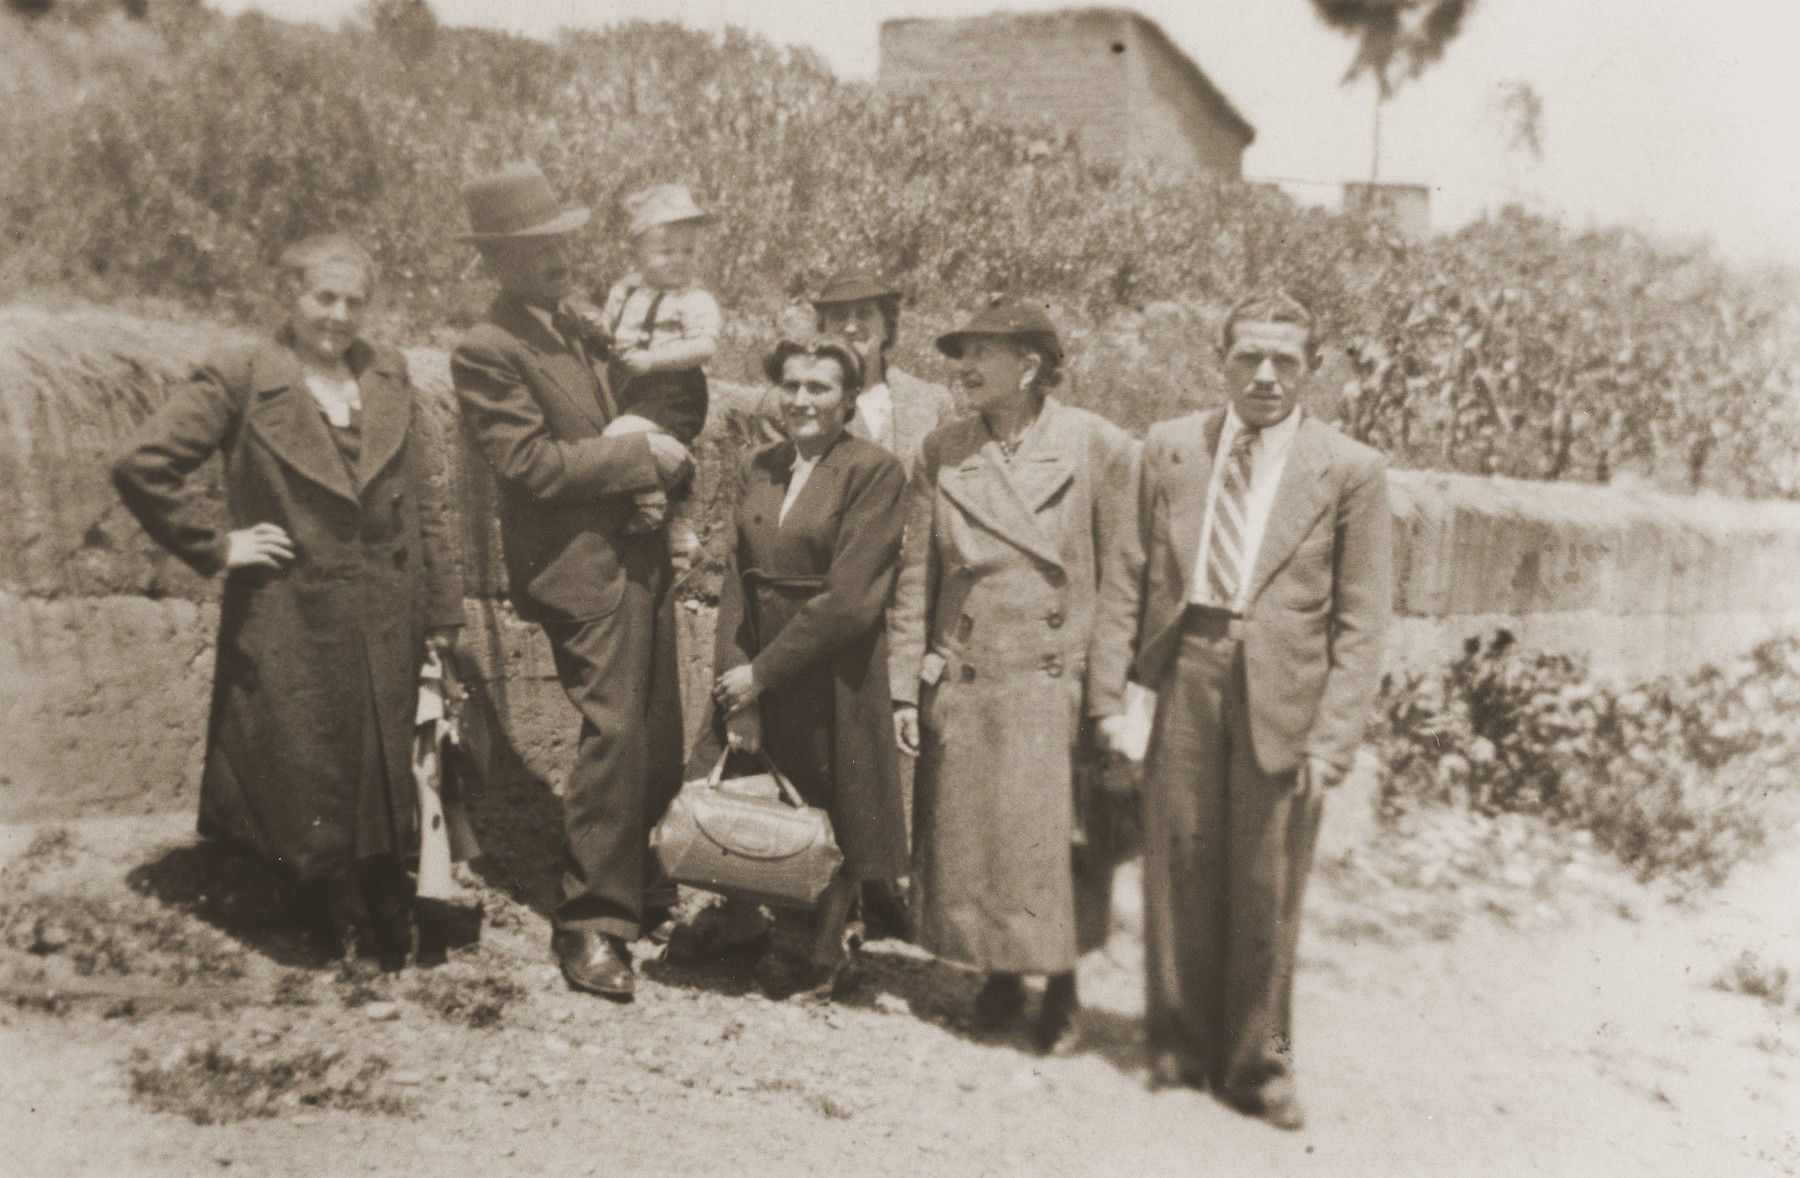 Members of the extended Spitzer family and friends in La Paz.   Pictured from left to right are Bertha and Nathan Wolfinger; Leo Spitzer; Rosie Spitzer; unknown; Lina Spitzer; and Ferry Kohn.